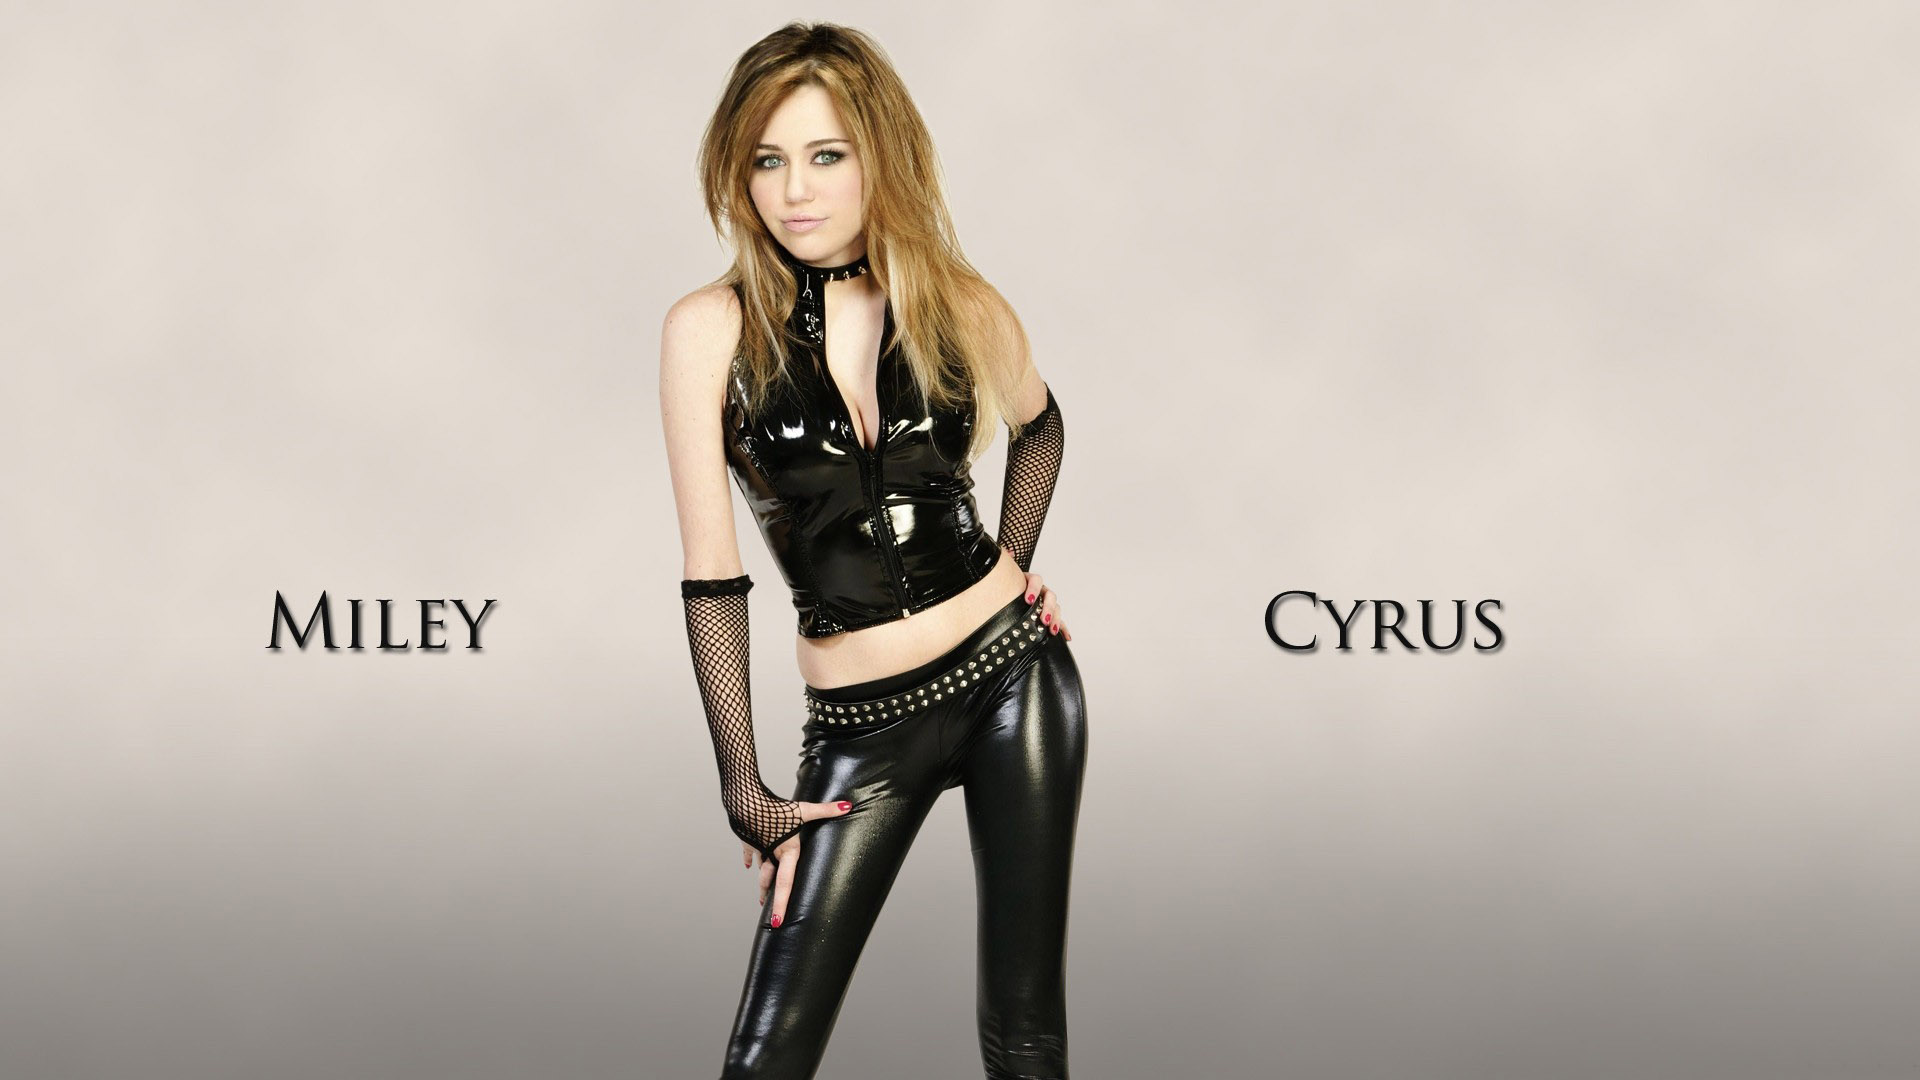 Miley Cyrus 2015 Latex Wallpaper 1920x1080